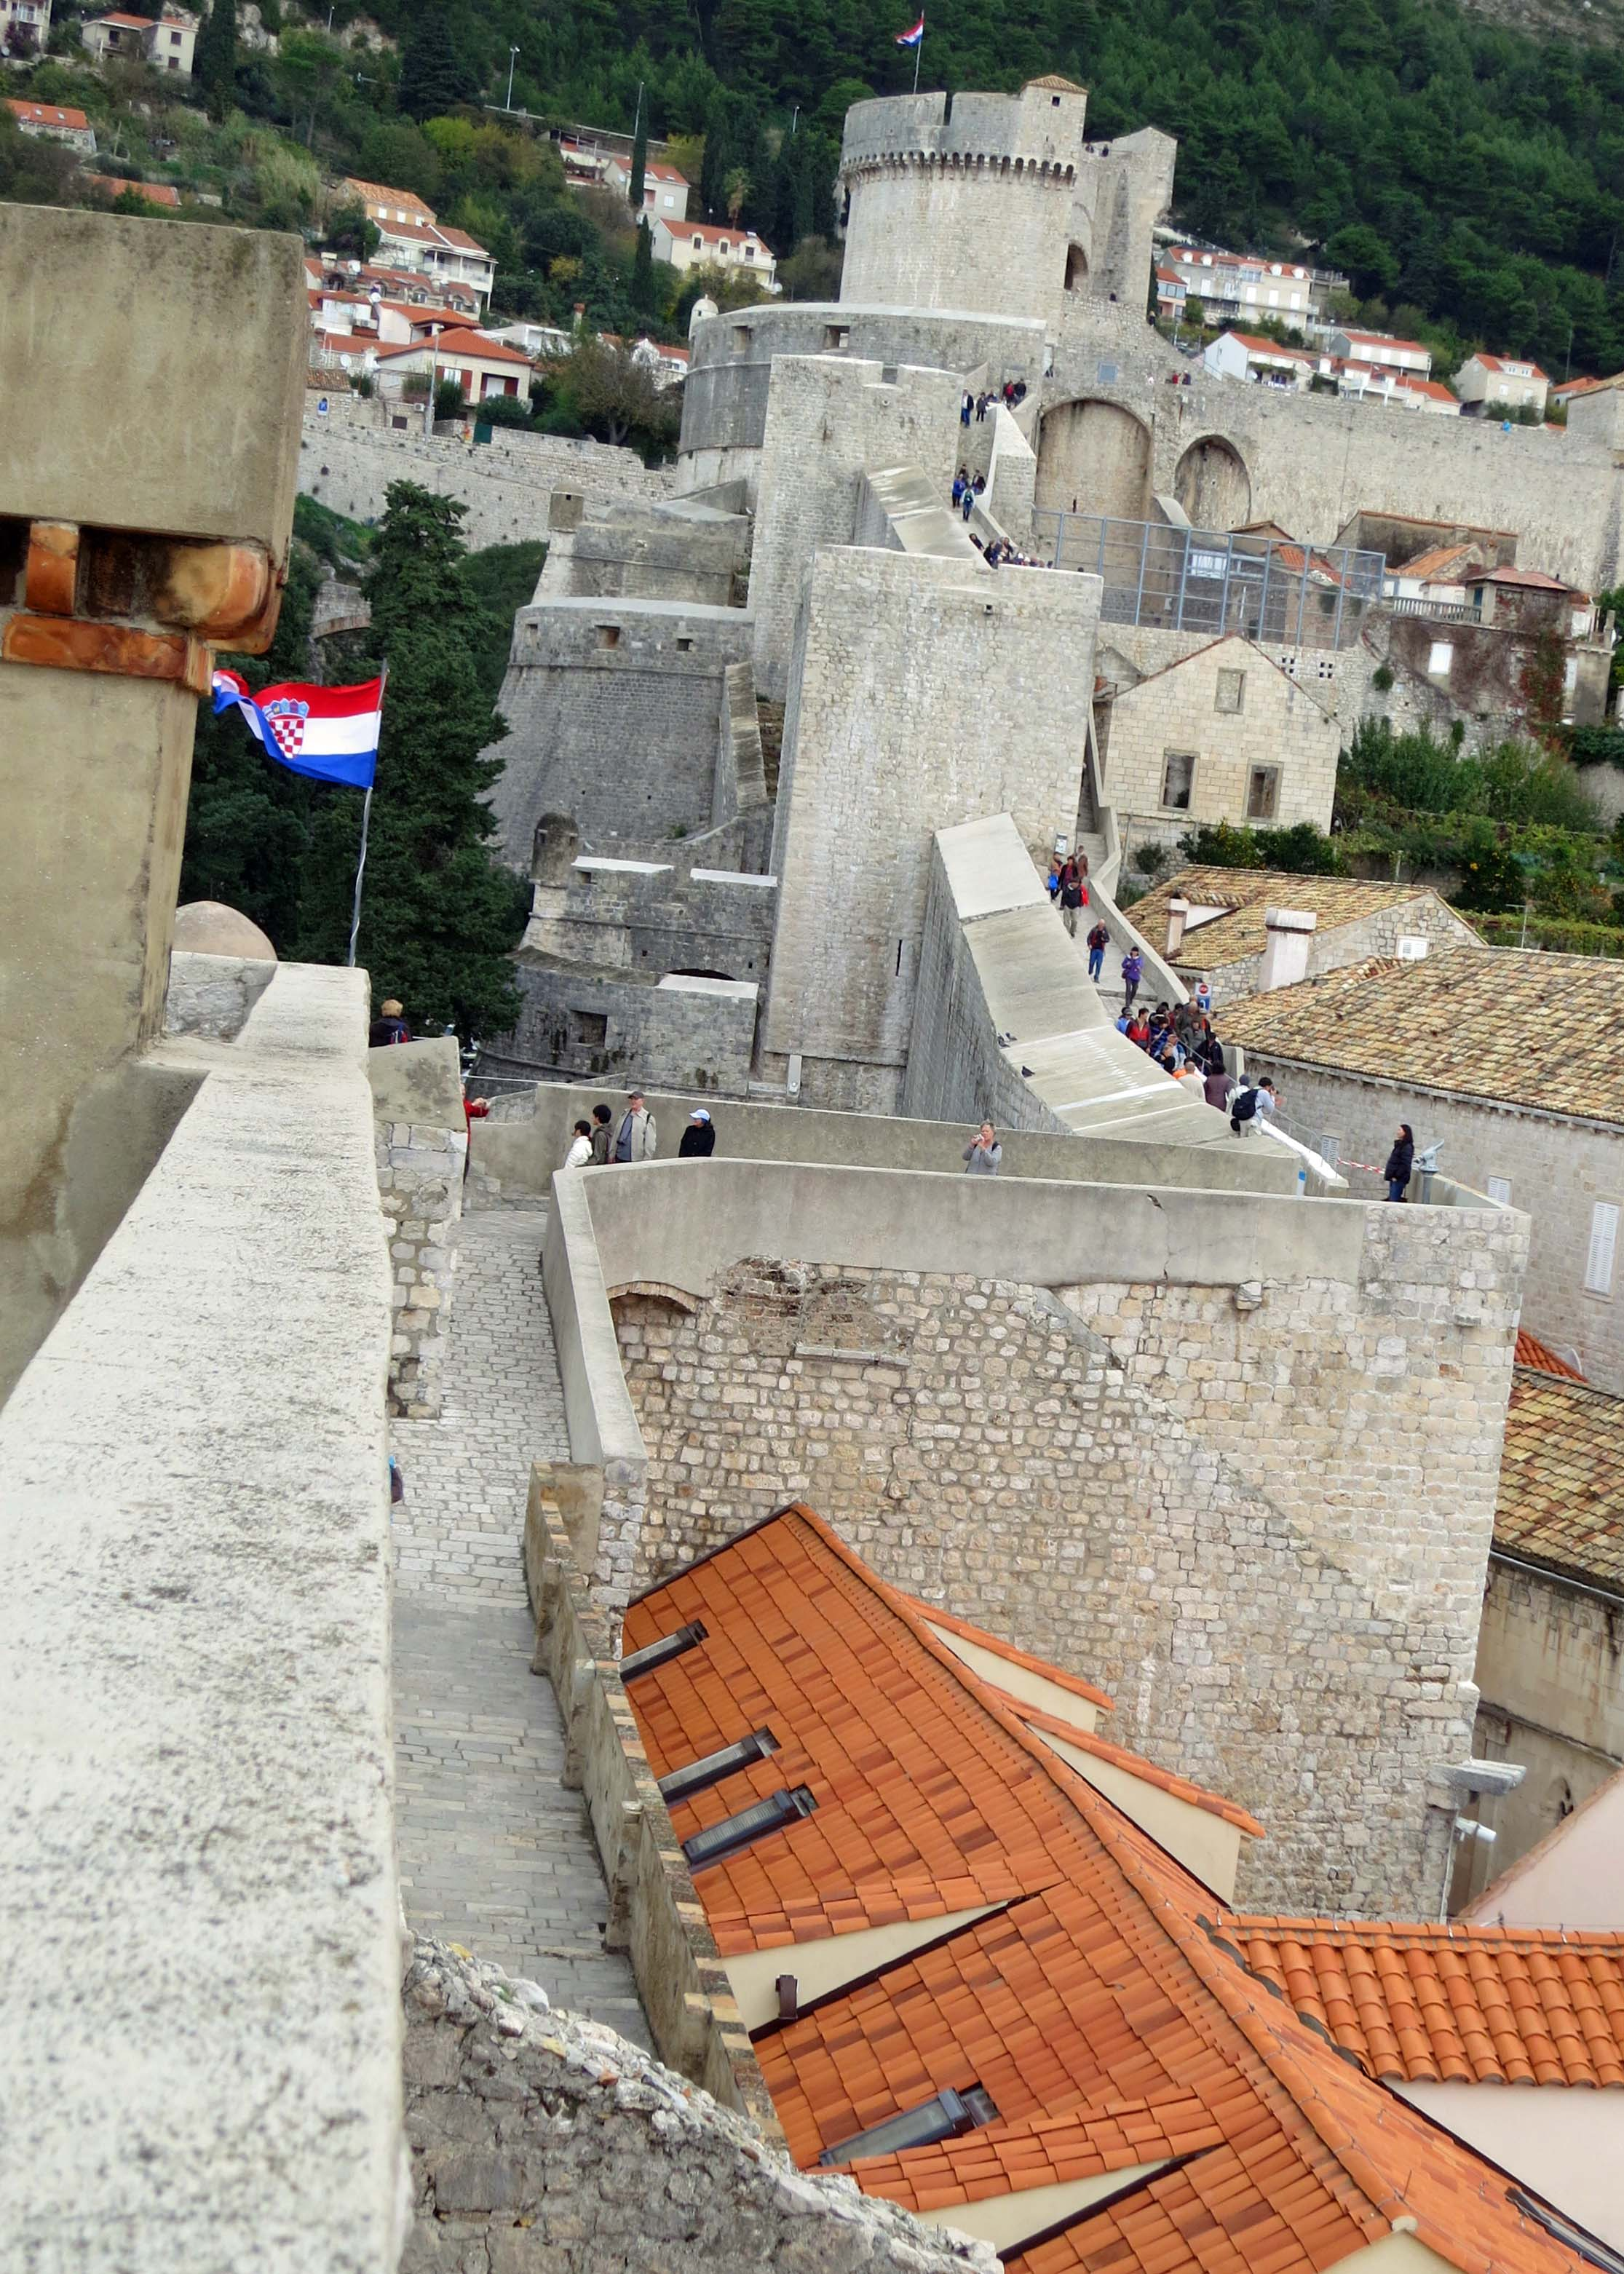 This photo looks up toward Minceta Tower, the highest point on the walls of Dubrovnik.